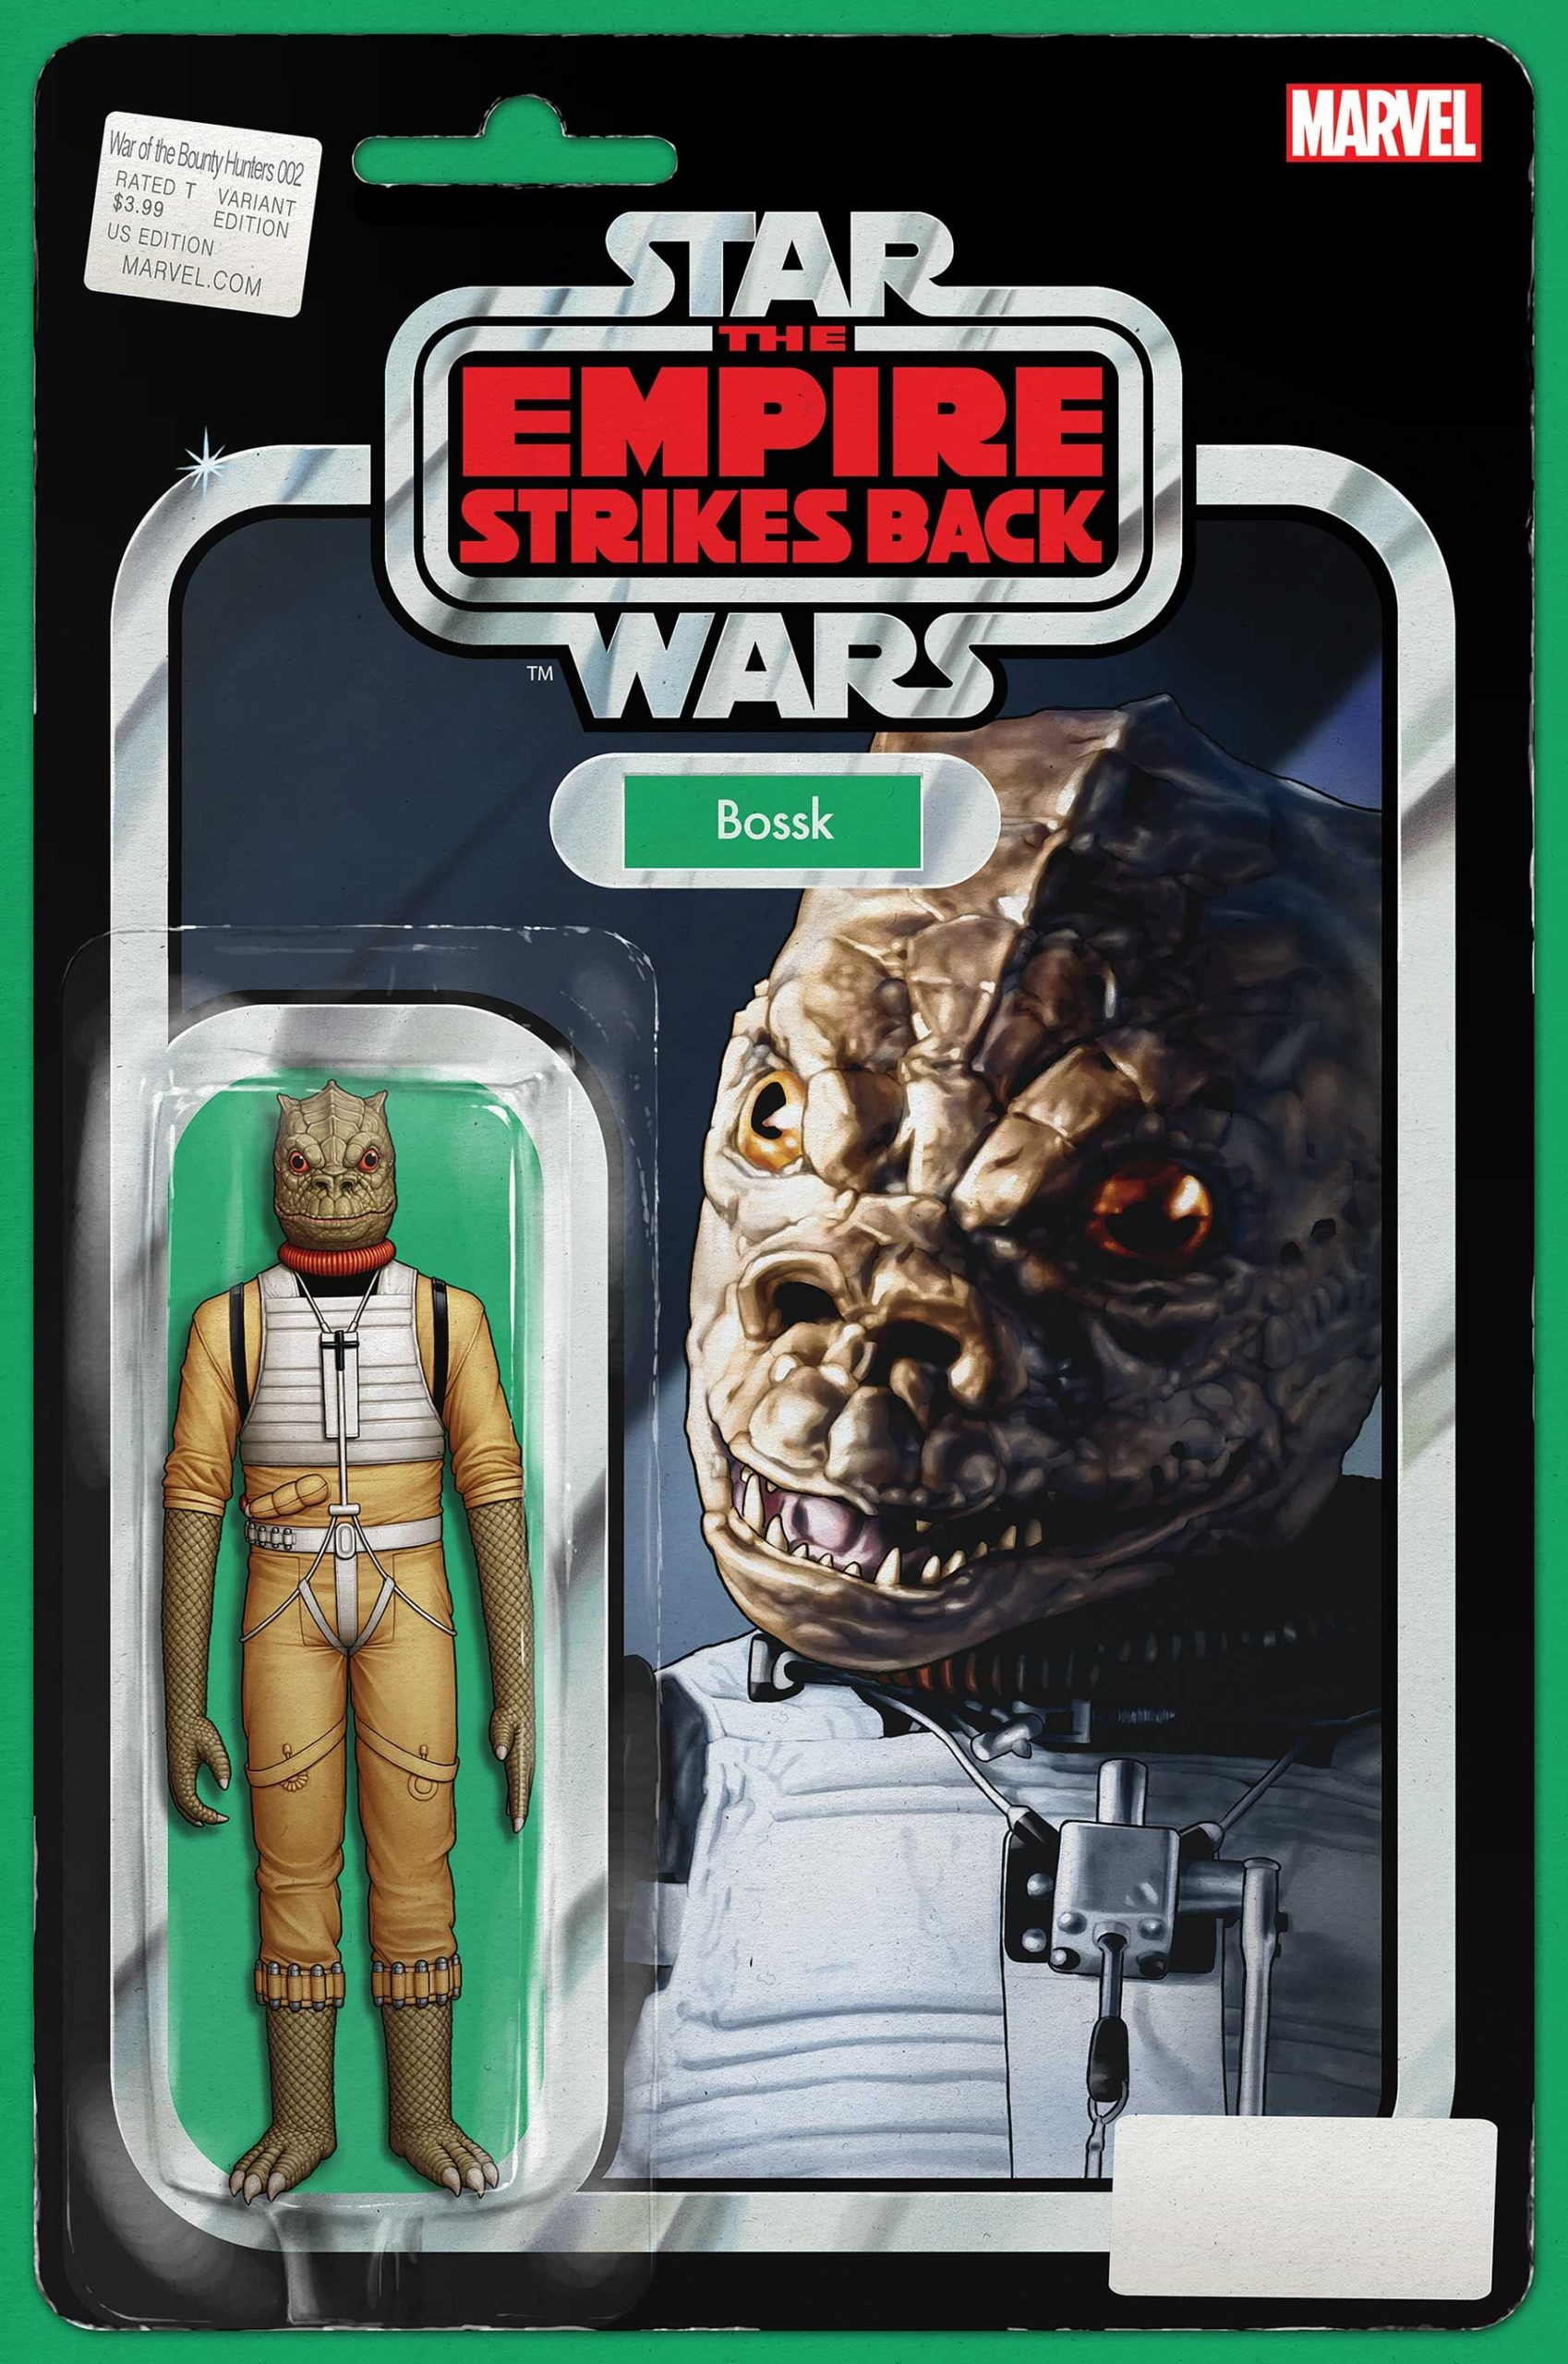 War of the Bounty Hunters #2 (Action Figure Variant Cover) (14.07.2021)